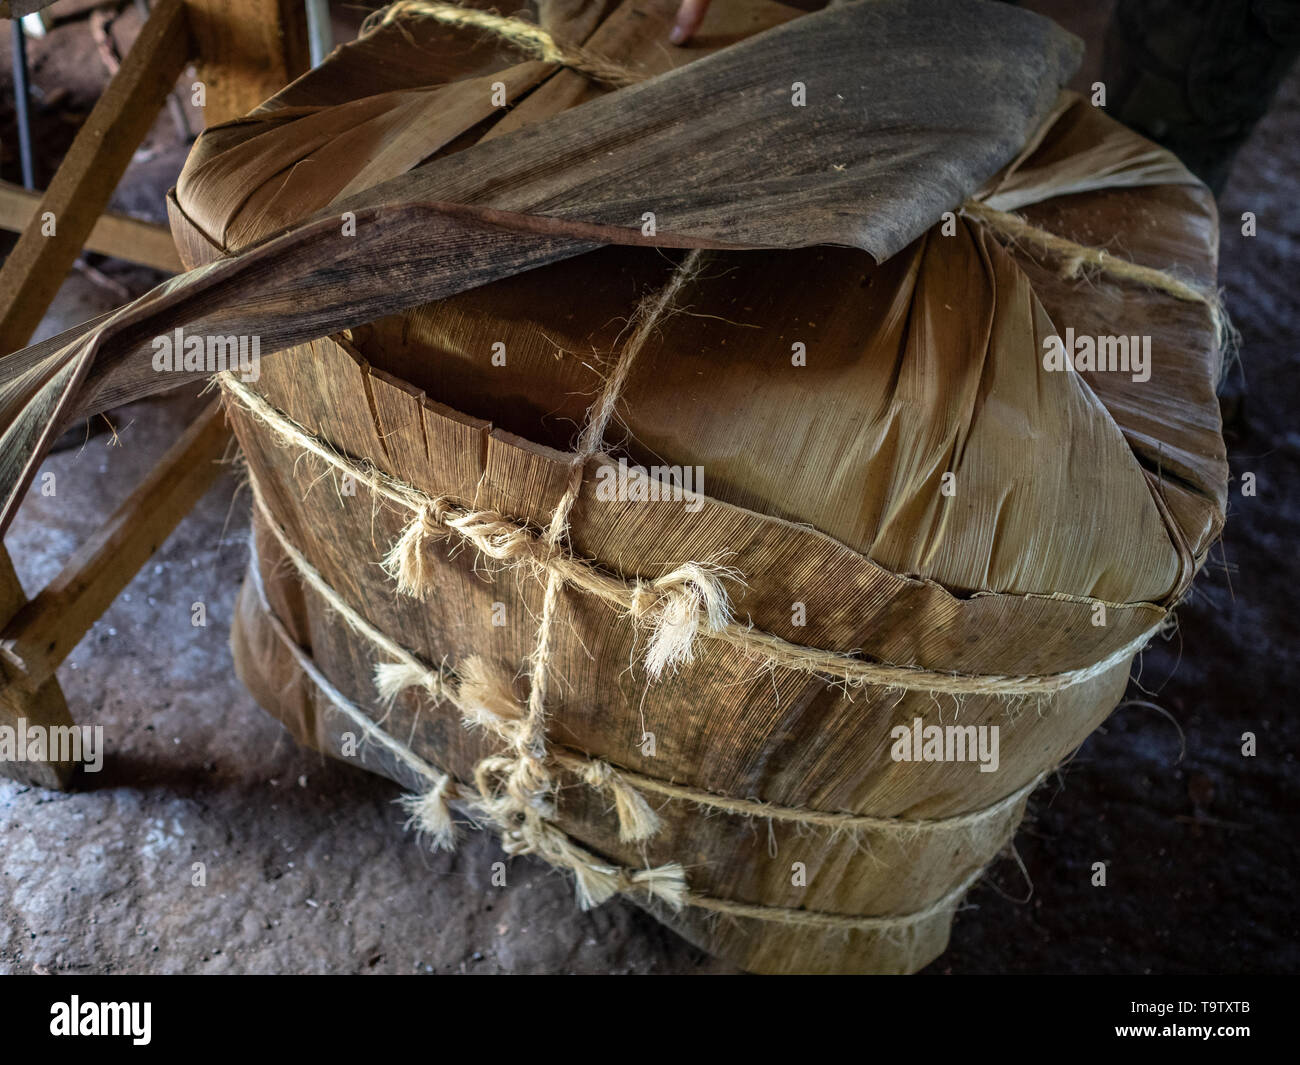 Vinales tobacco country, a block of tobacco leaves wrapped up with string ready to be shipped - Stock Image